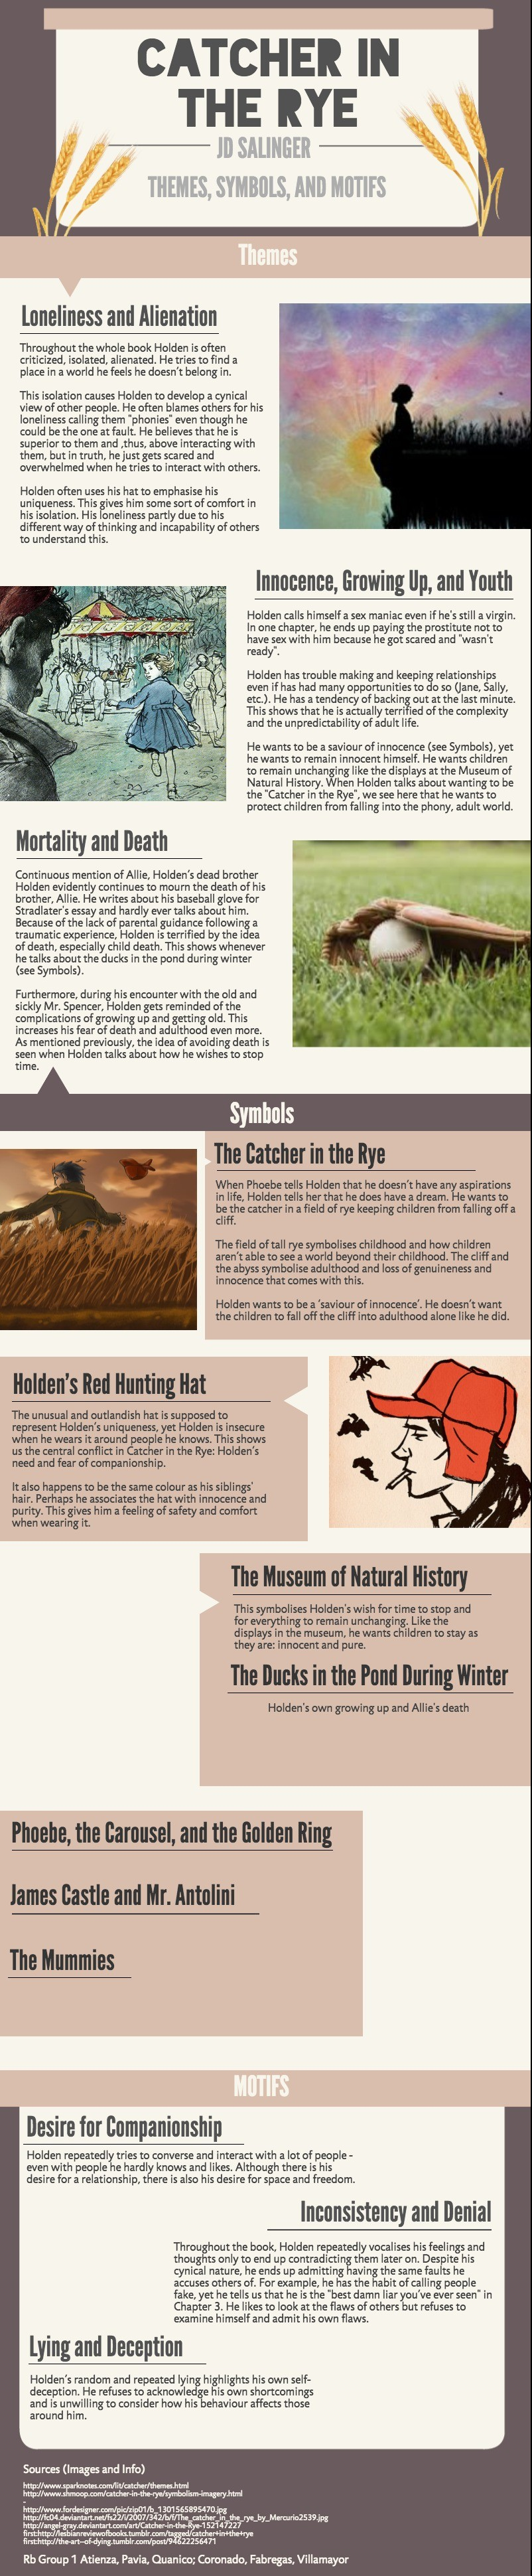 catcher-in-the-rye-infographic